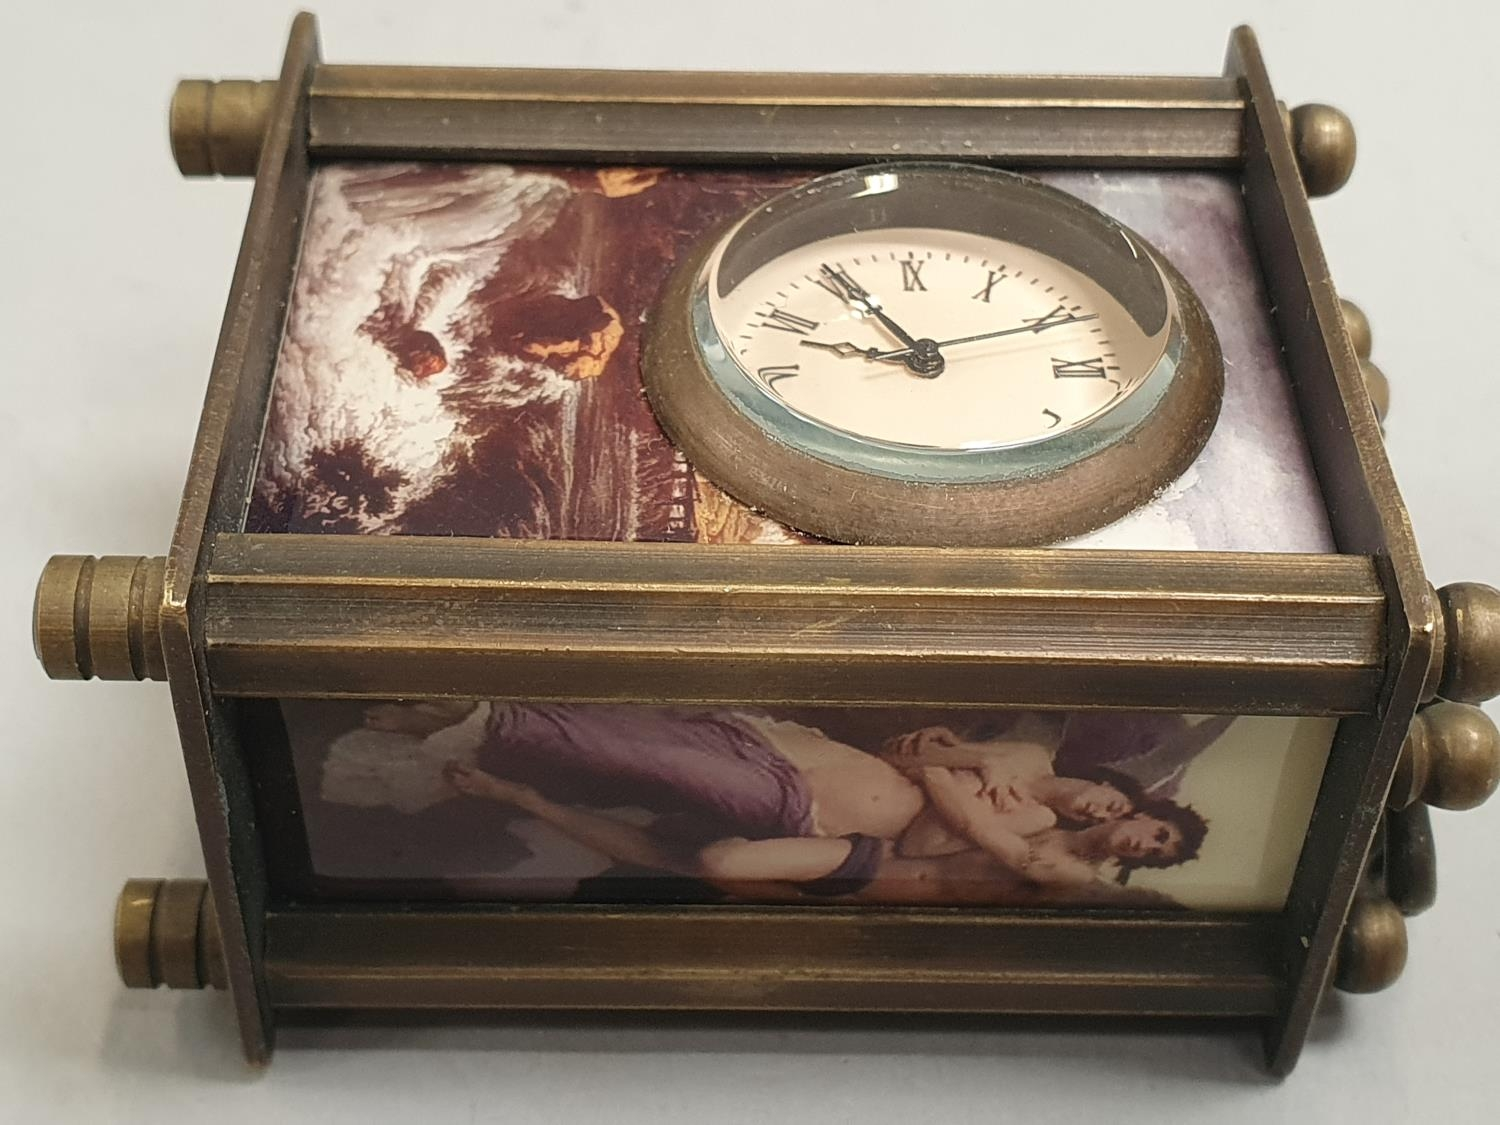 Miscellaneous curios to include pocket watch. - Image 5 of 5